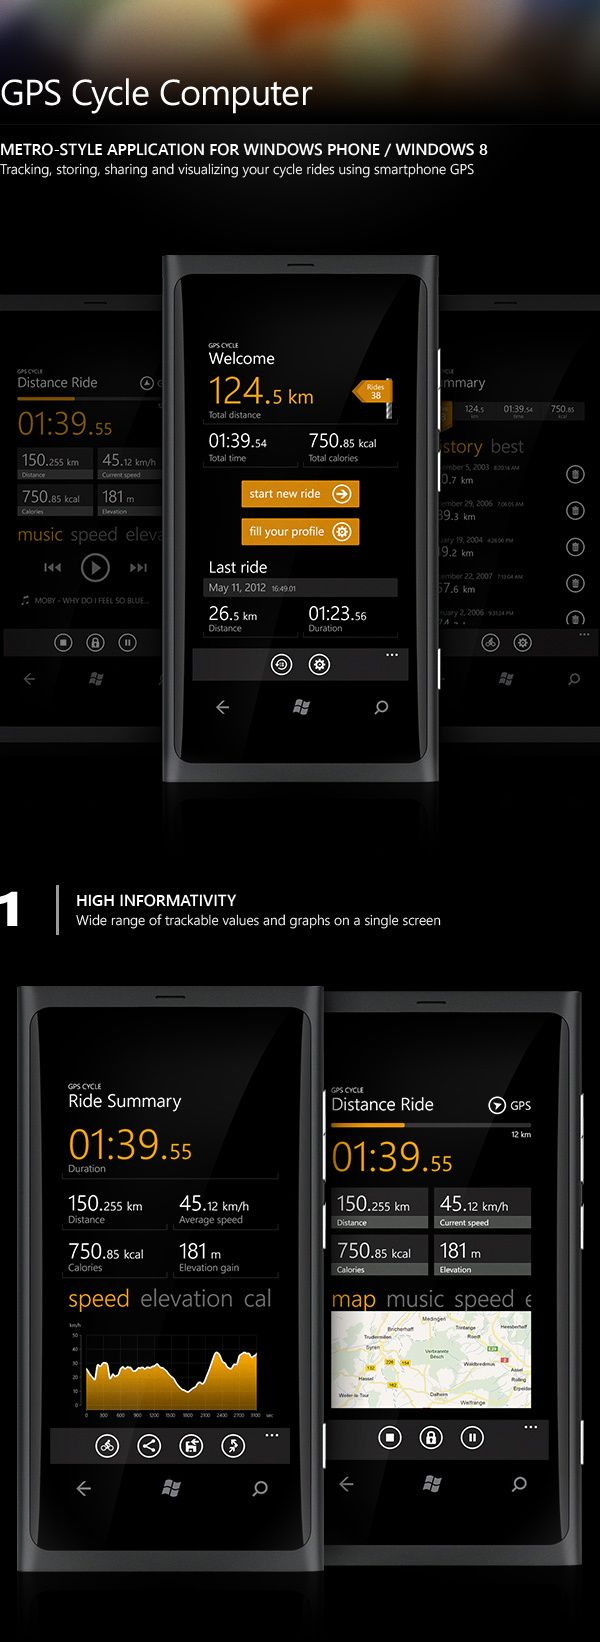 GPS Cycle (Metro application) by Alexey Tcherniak, via Behance